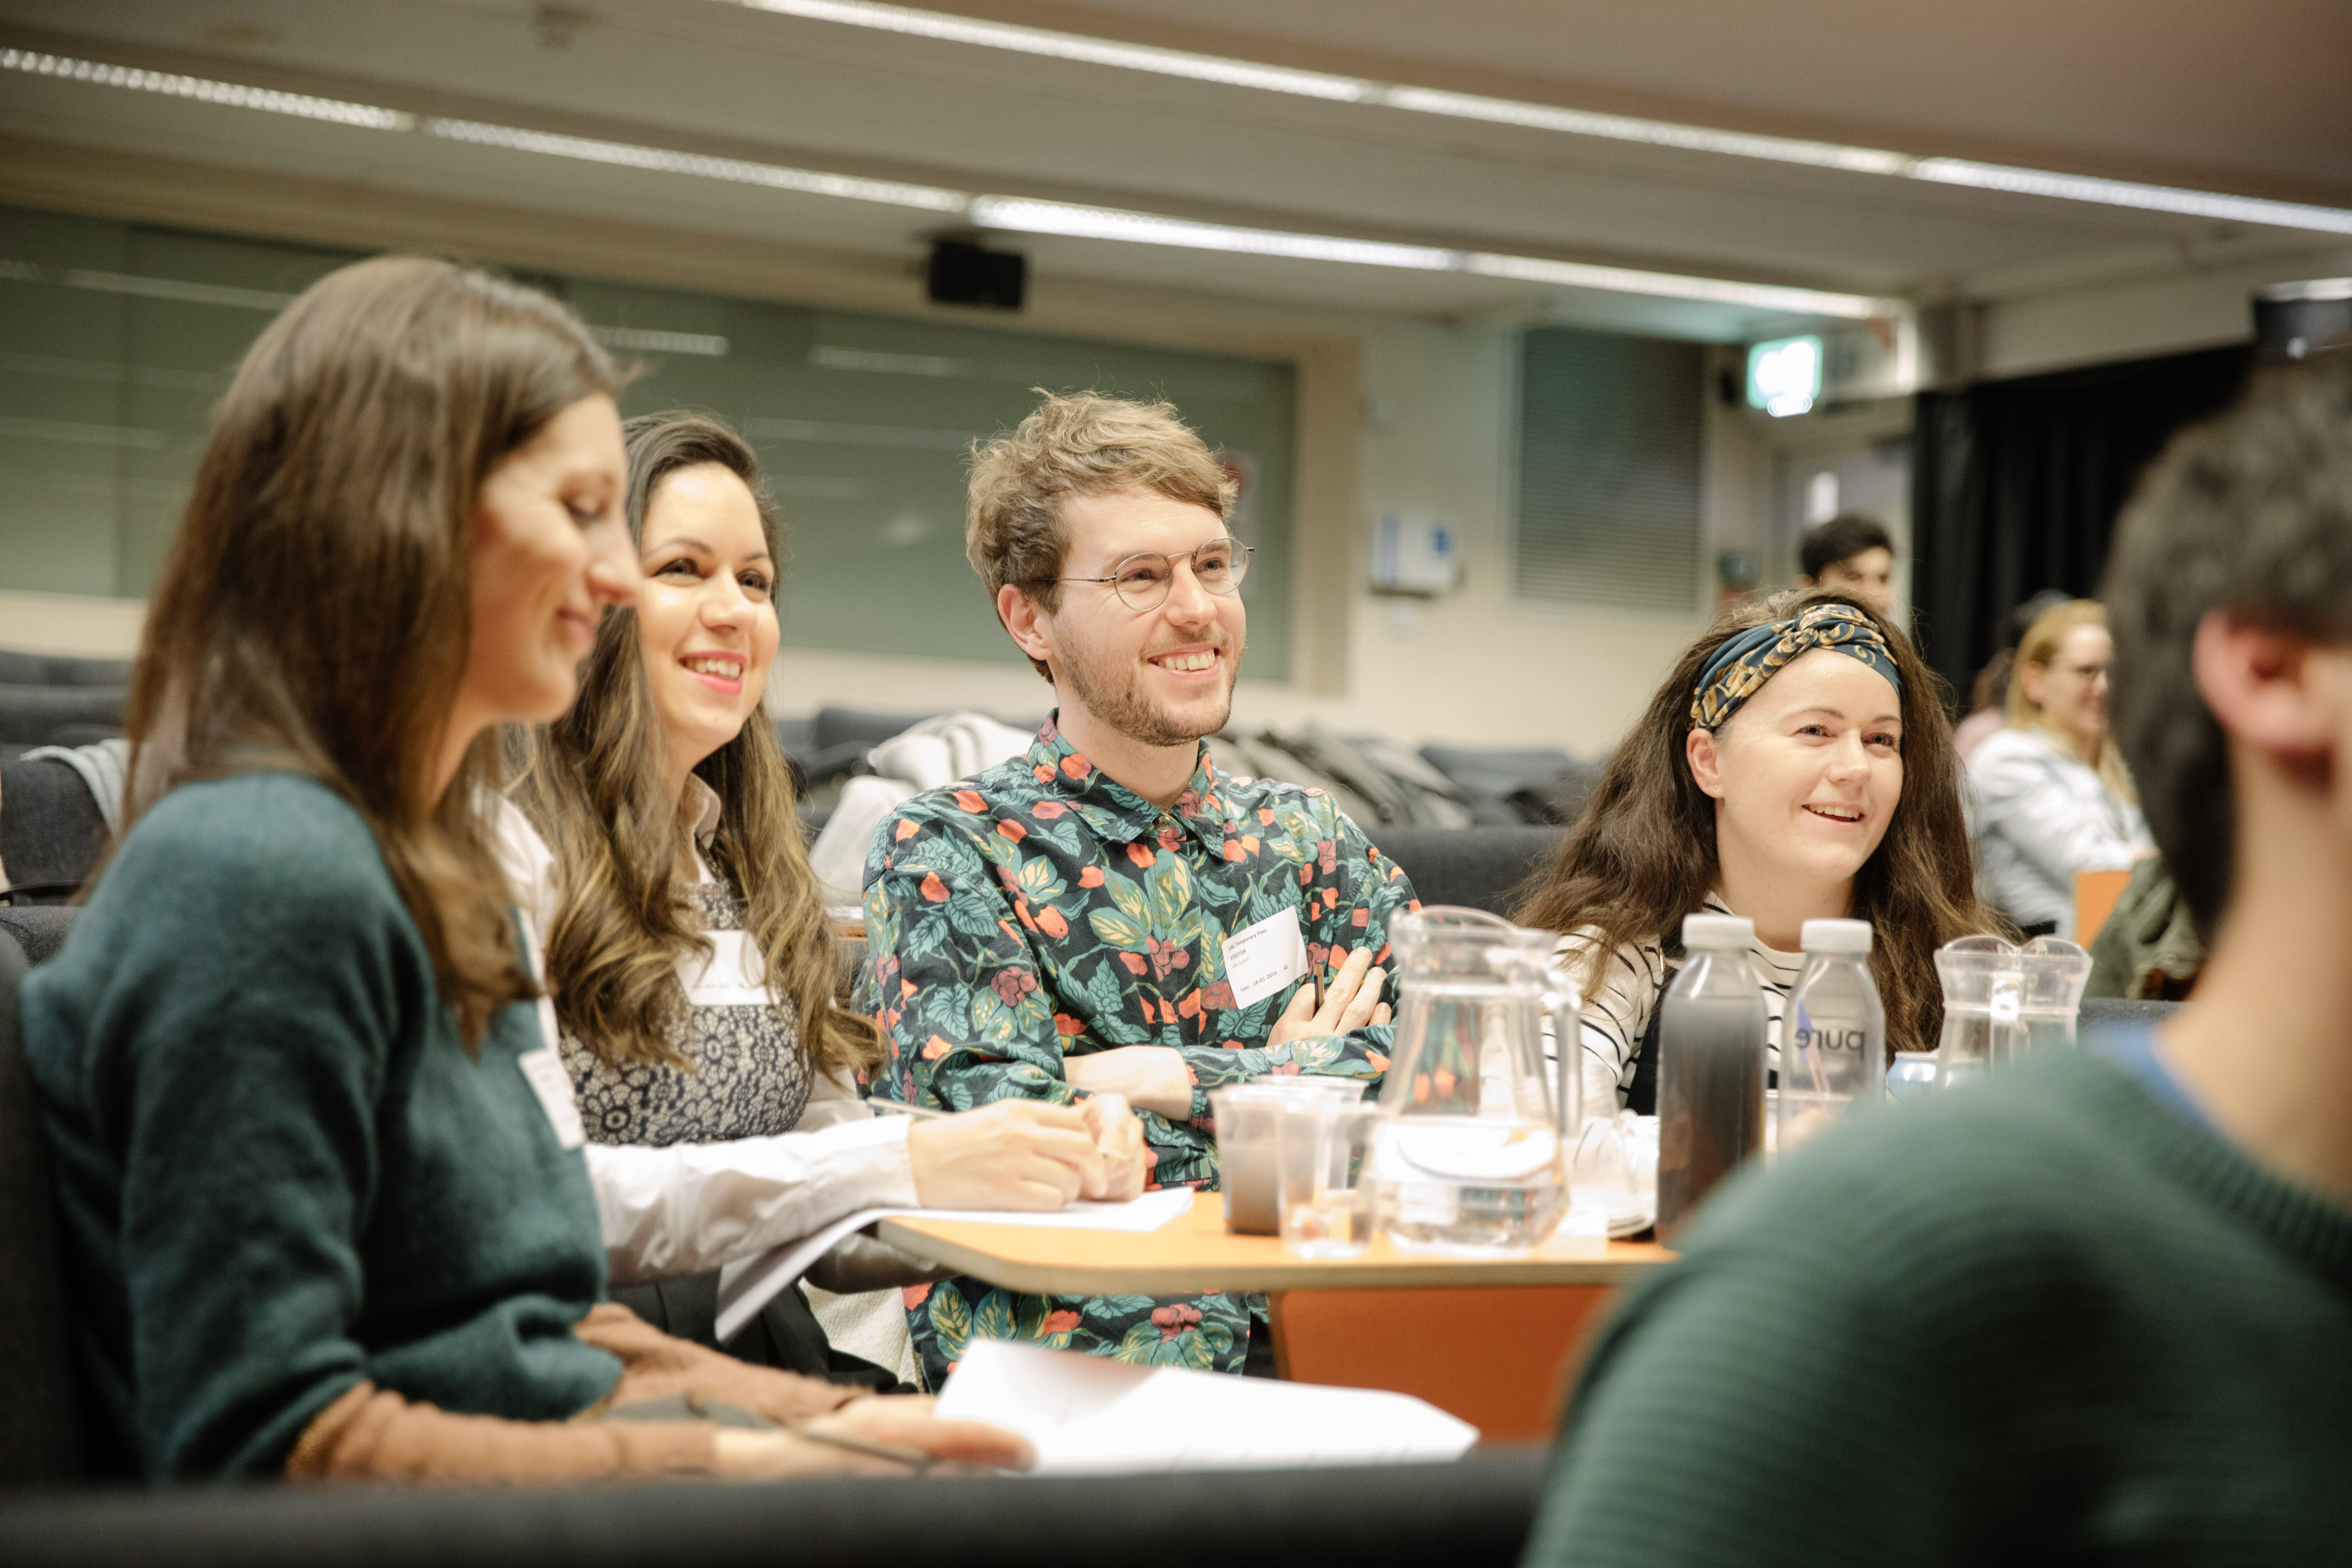 WaterAid staff on the judging panel of the hackathon with UAL students